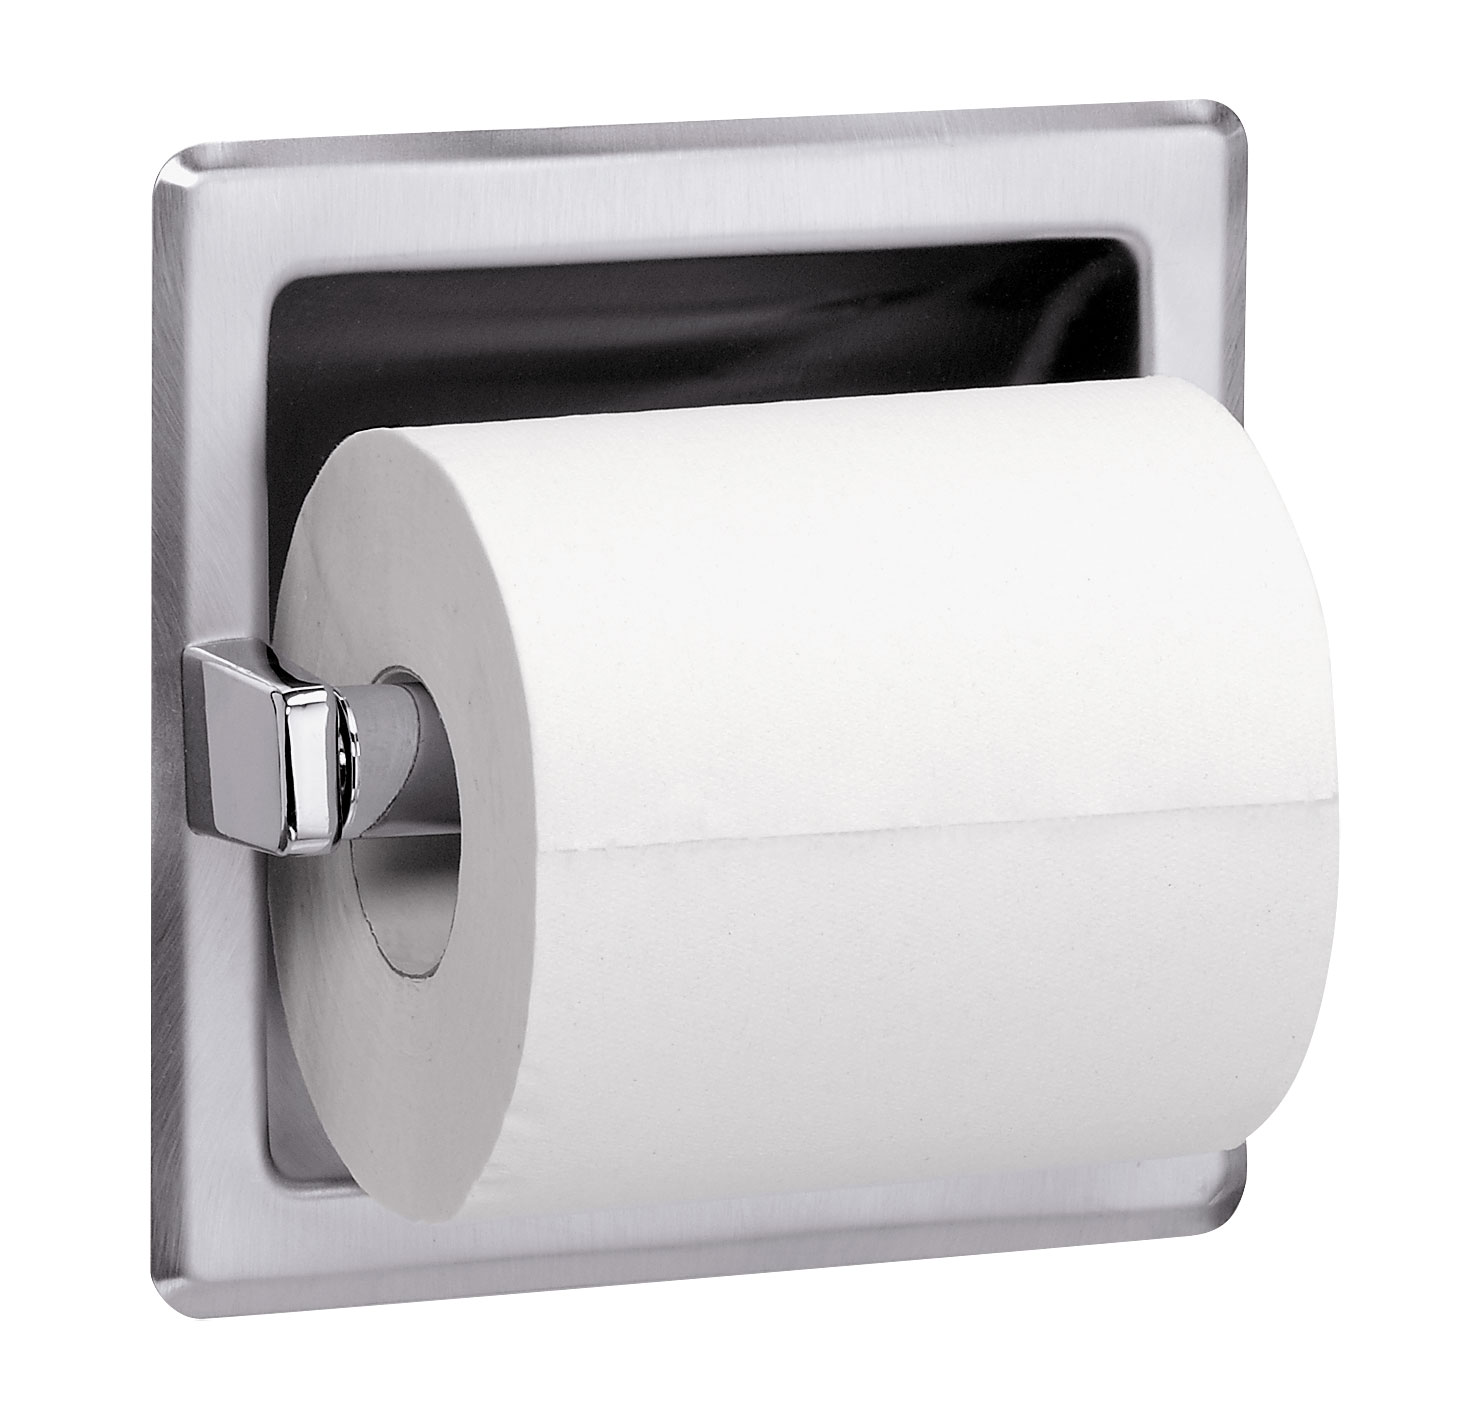 Tp Dispenser Recessed Single Roll Toilet Tissue Dispenser With Spare